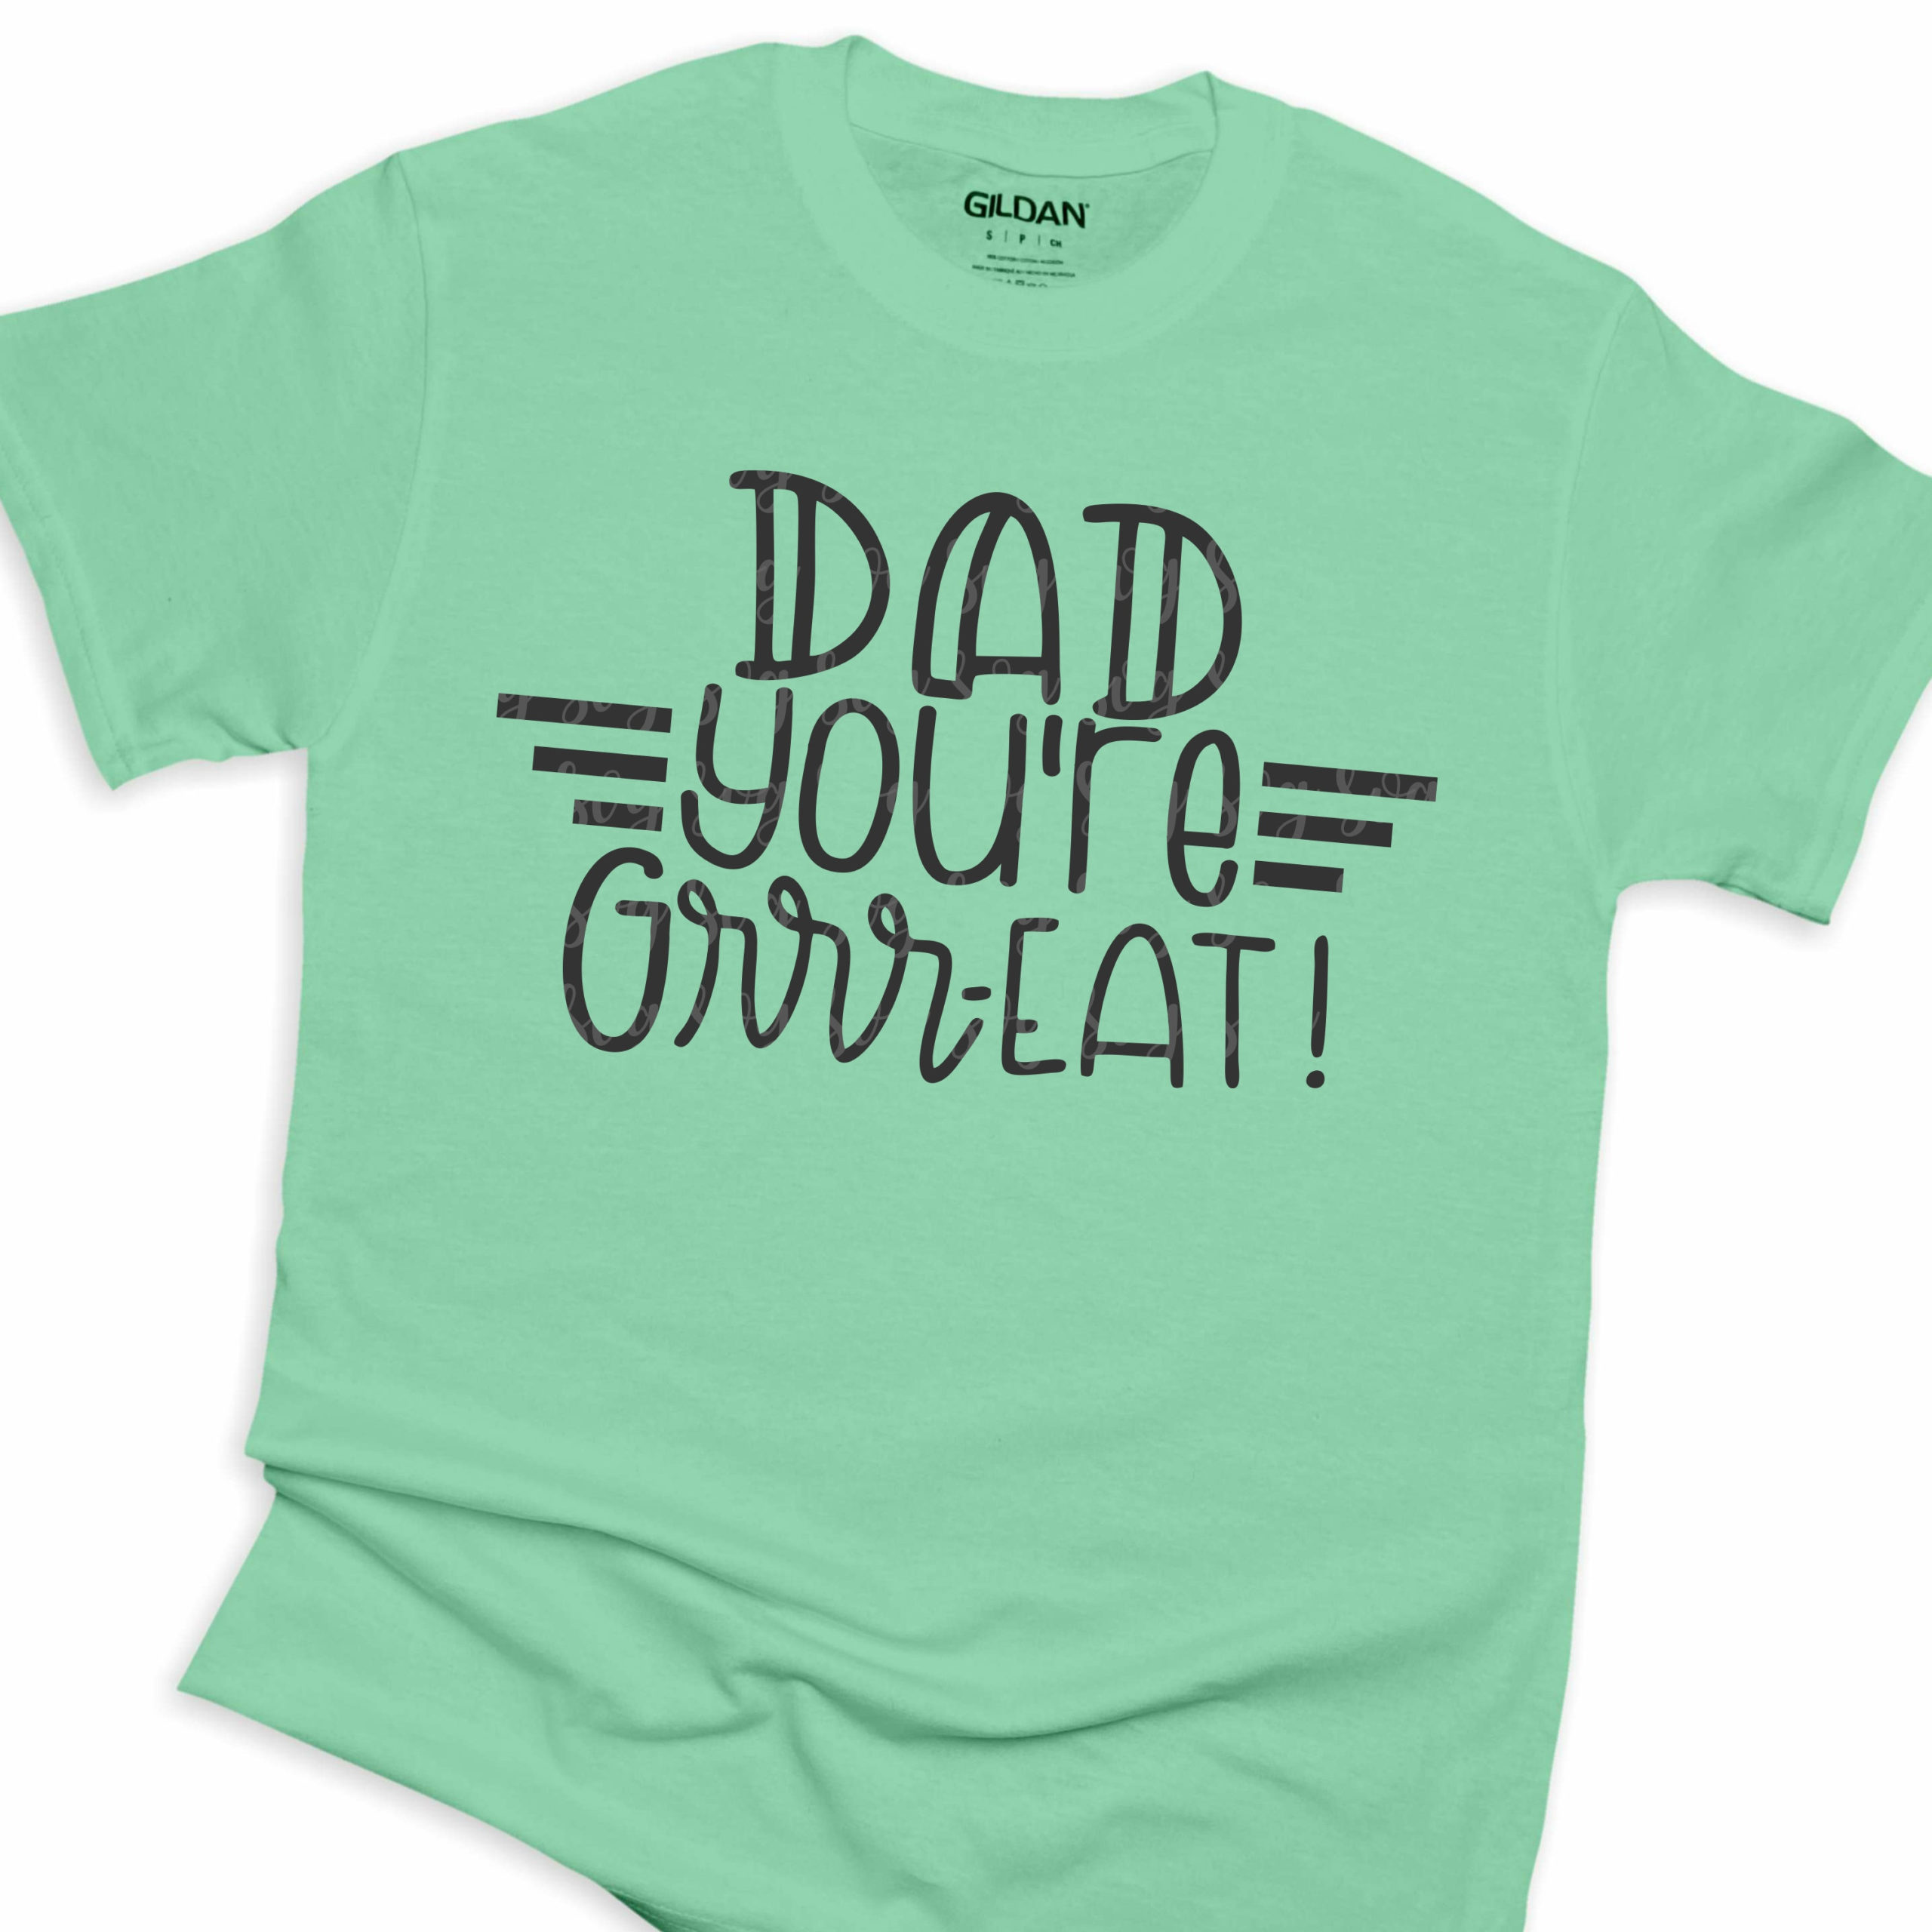 Dad-youre-great-svgfathers-day-svgdad-svgfathers-svgdaddy-svggrandpa-svgsilhouette-dxfcricut-cutting-filesvg-for-cricut-5ef78974